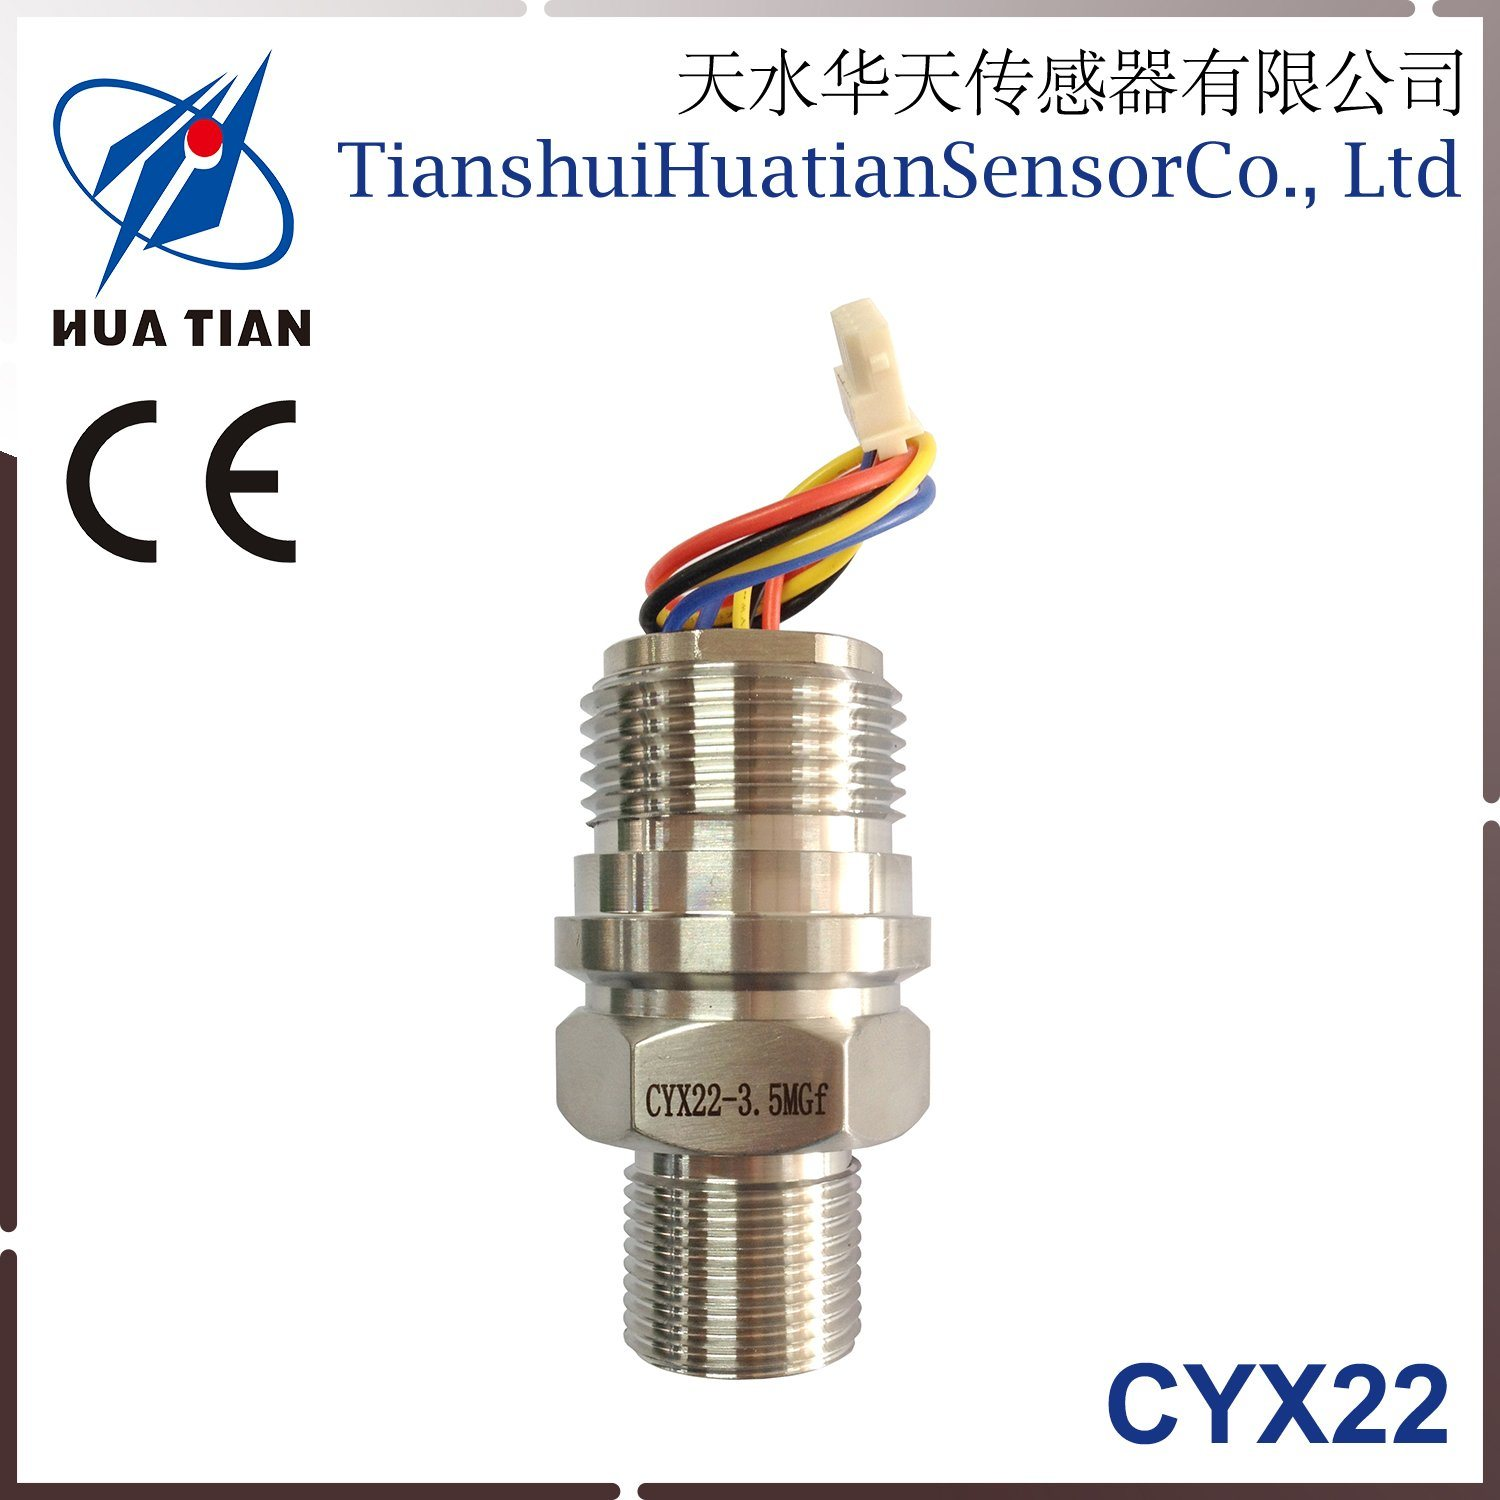 Cyx-22 Threaded Stainless Steel Pressure Sensor